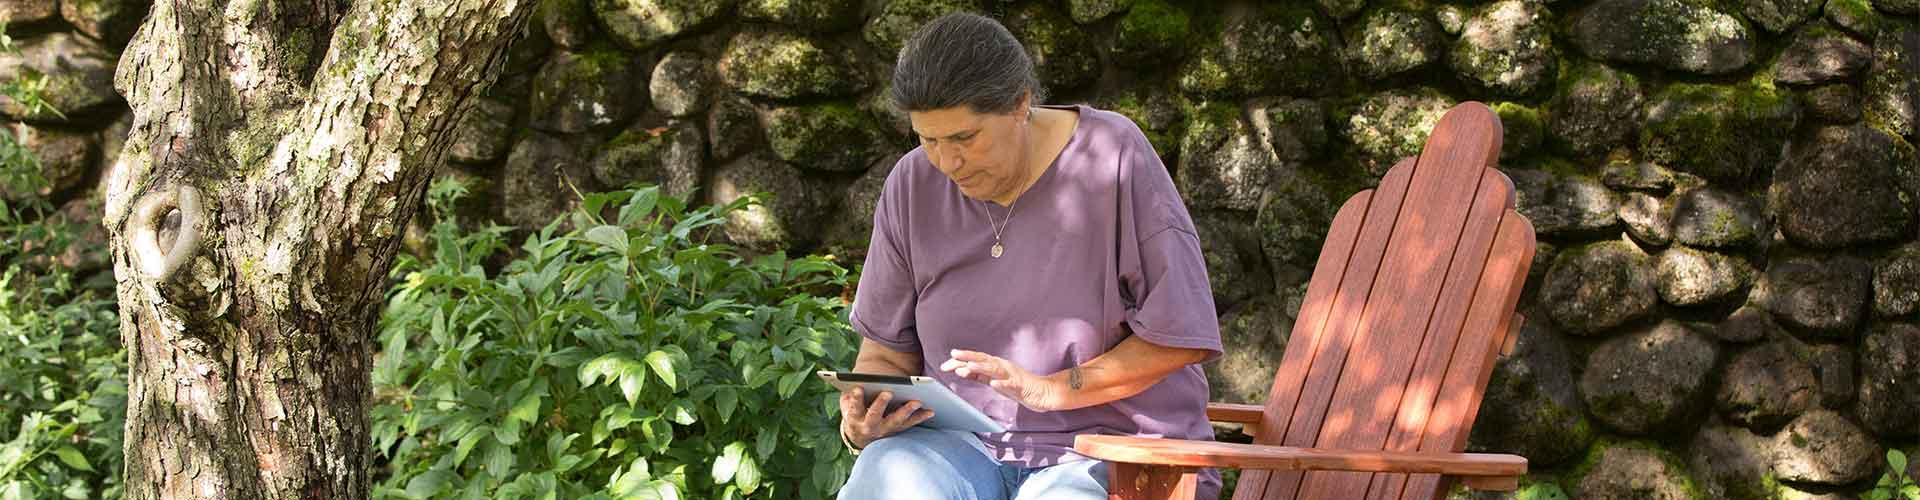 Woman sits outside and looks at tablet